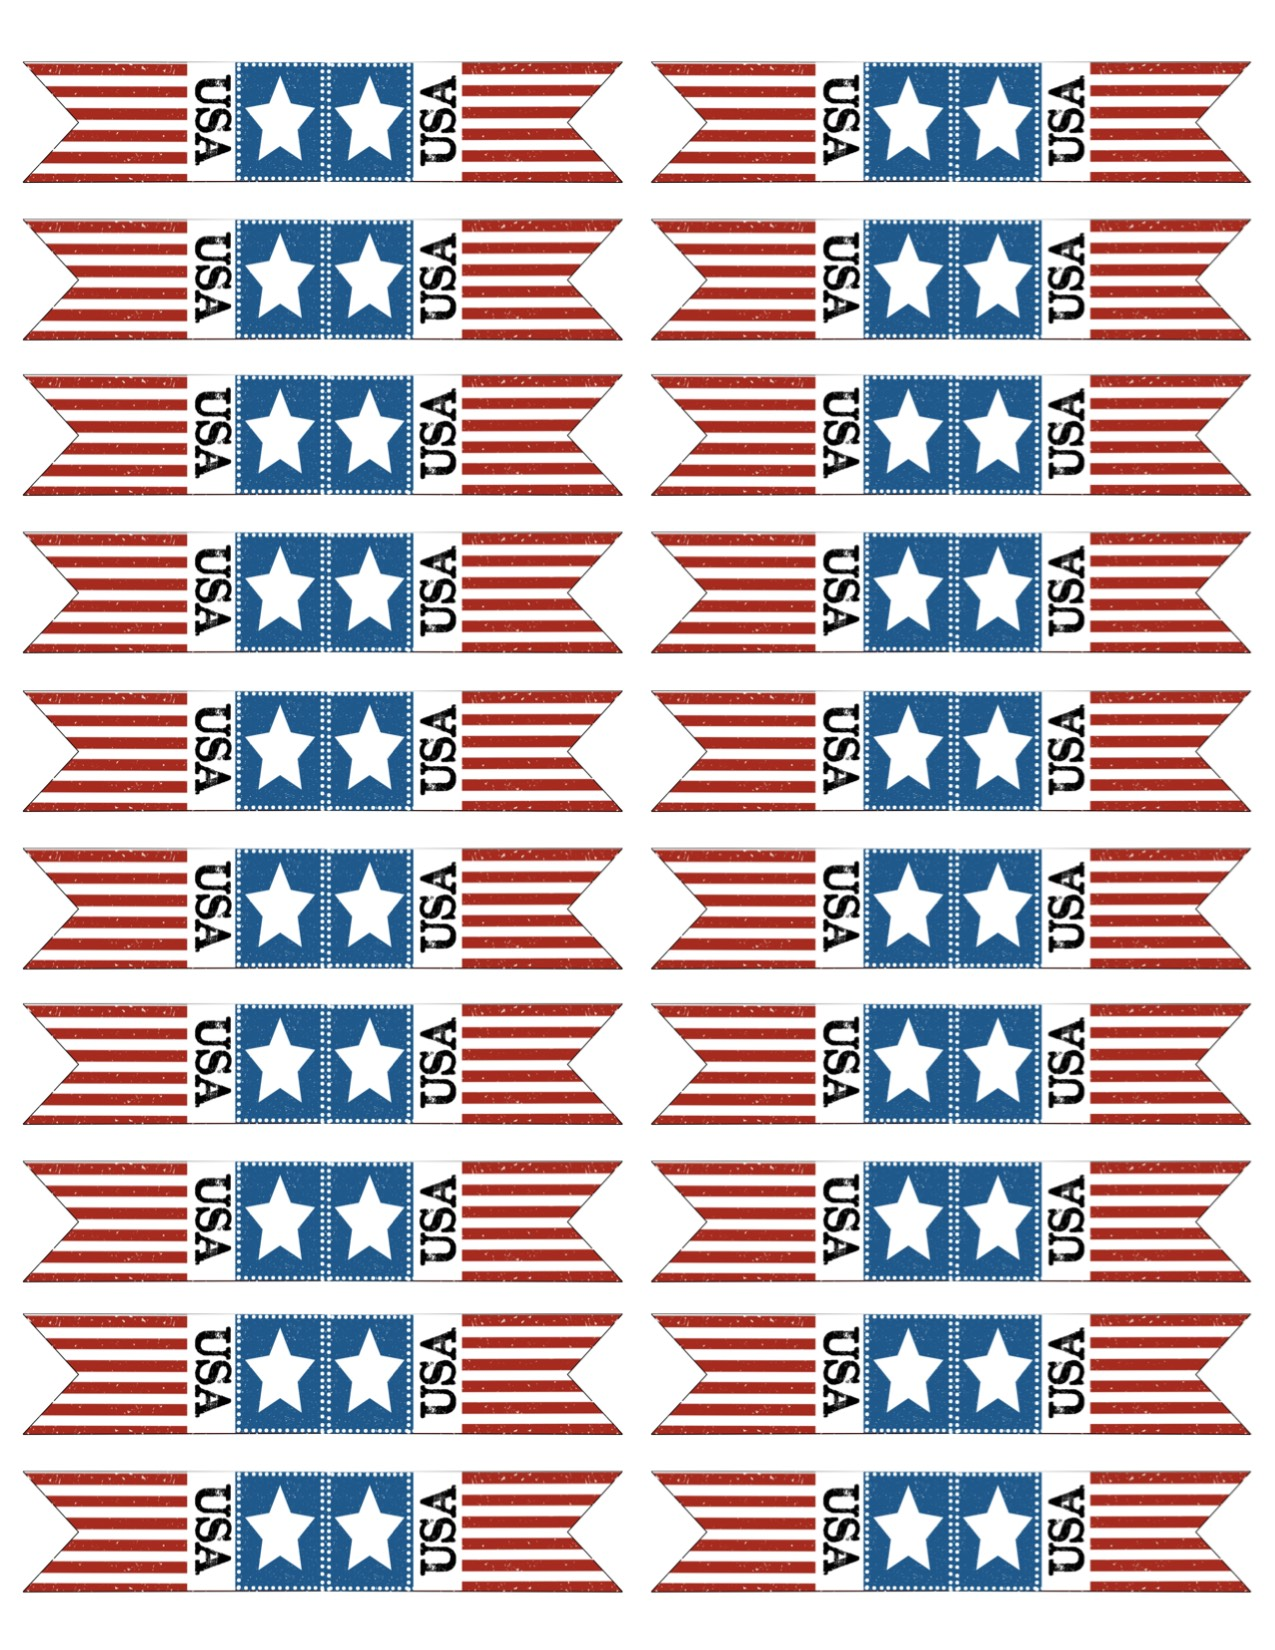 Bunting Flags For Your Patriotic American Celebration Print The 4th Of July Cupcake Toppers Here